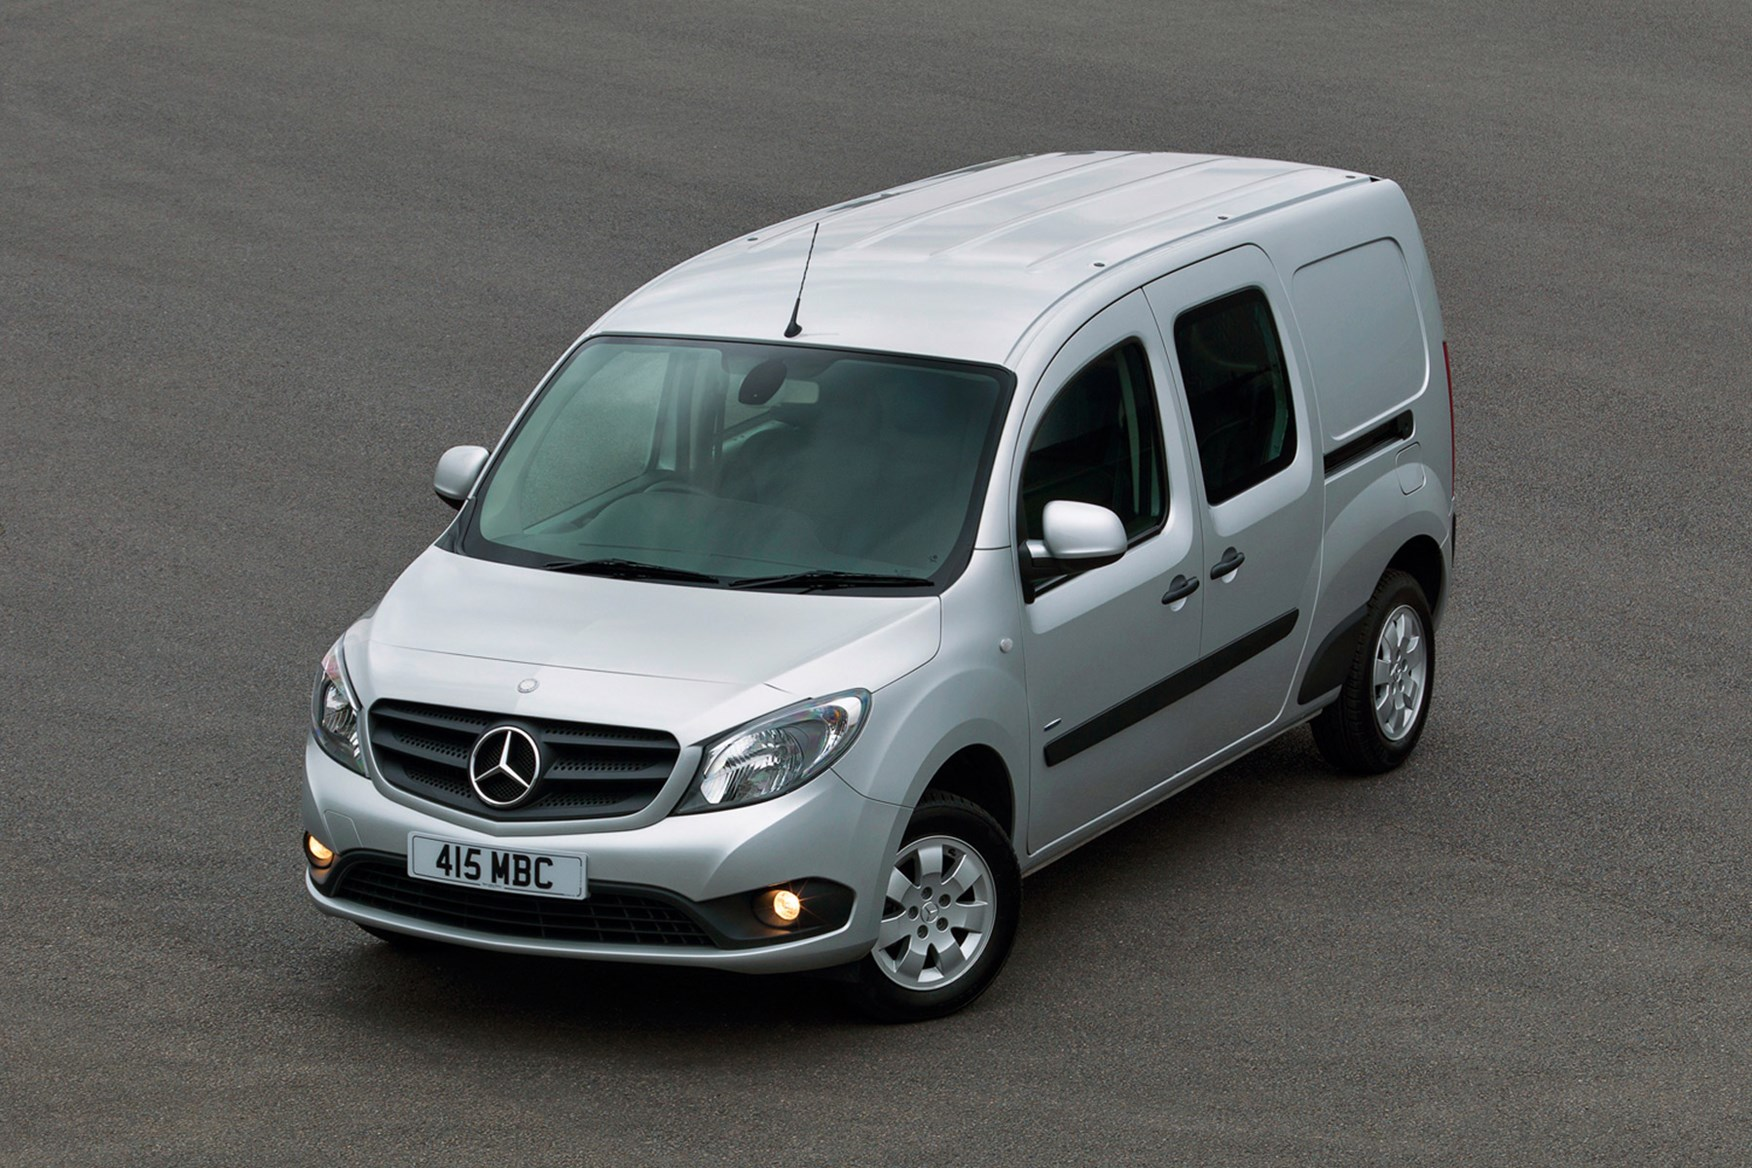 mercedes benz citan van review 2013 on parkers parkers. Black Bedroom Furniture Sets. Home Design Ideas